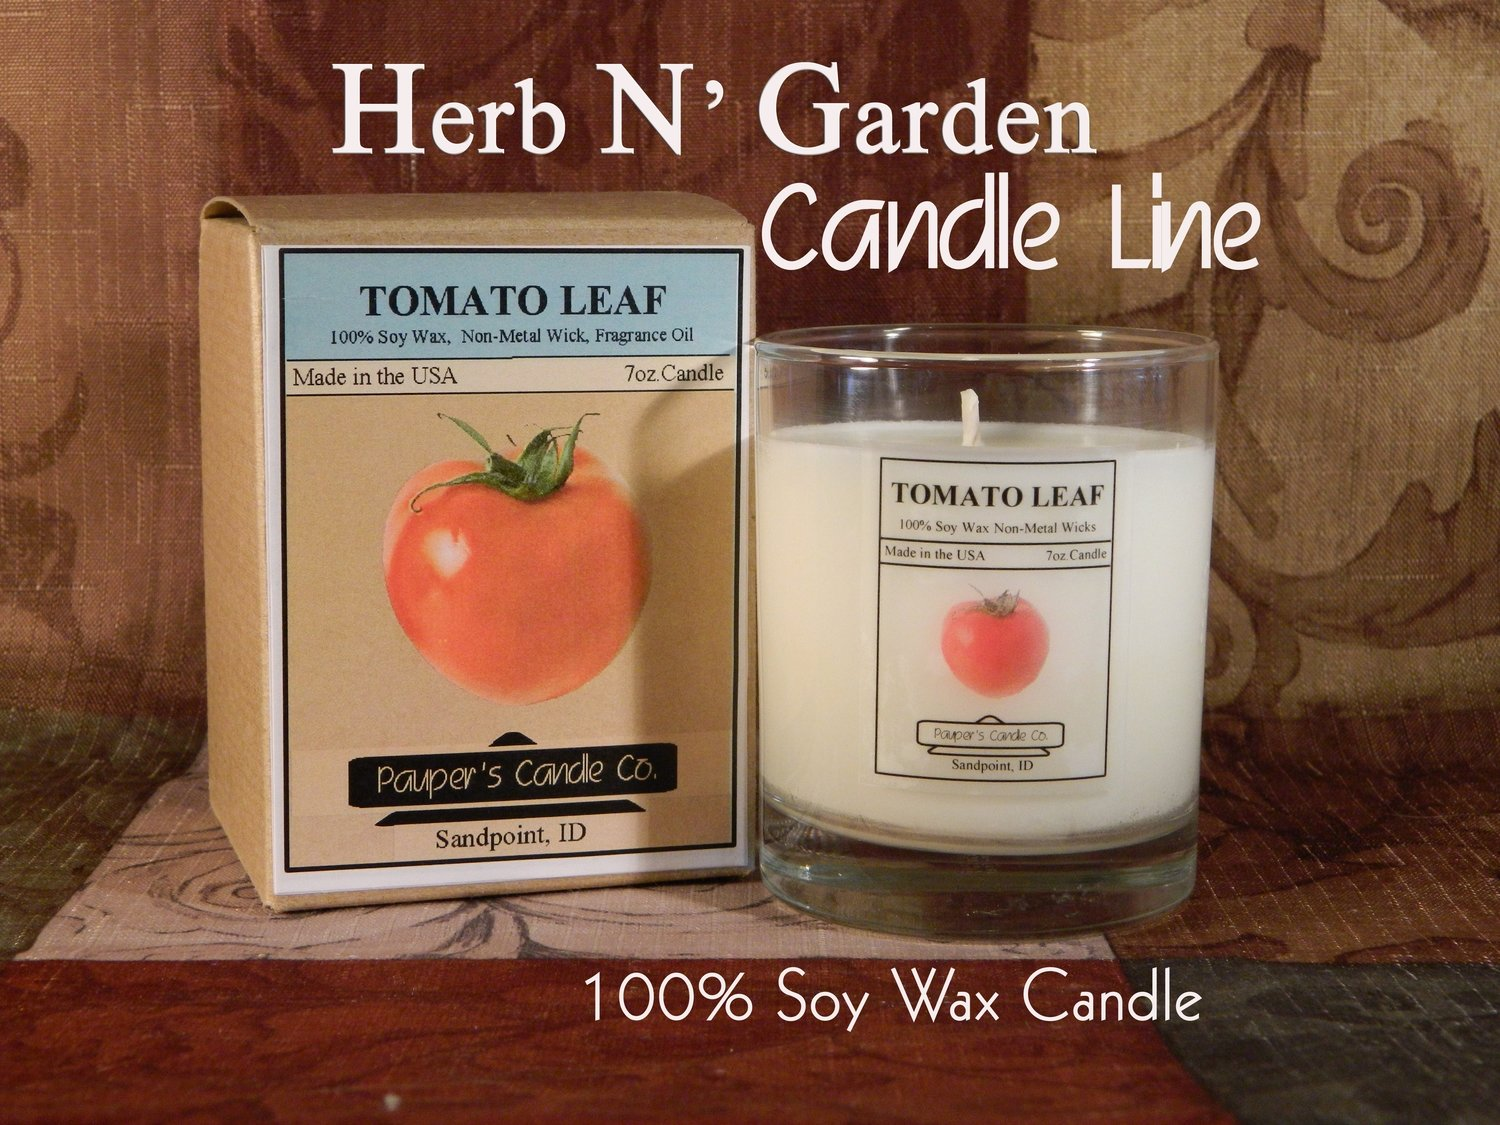 Enjoy Our Herb N' Garden Soy Candles